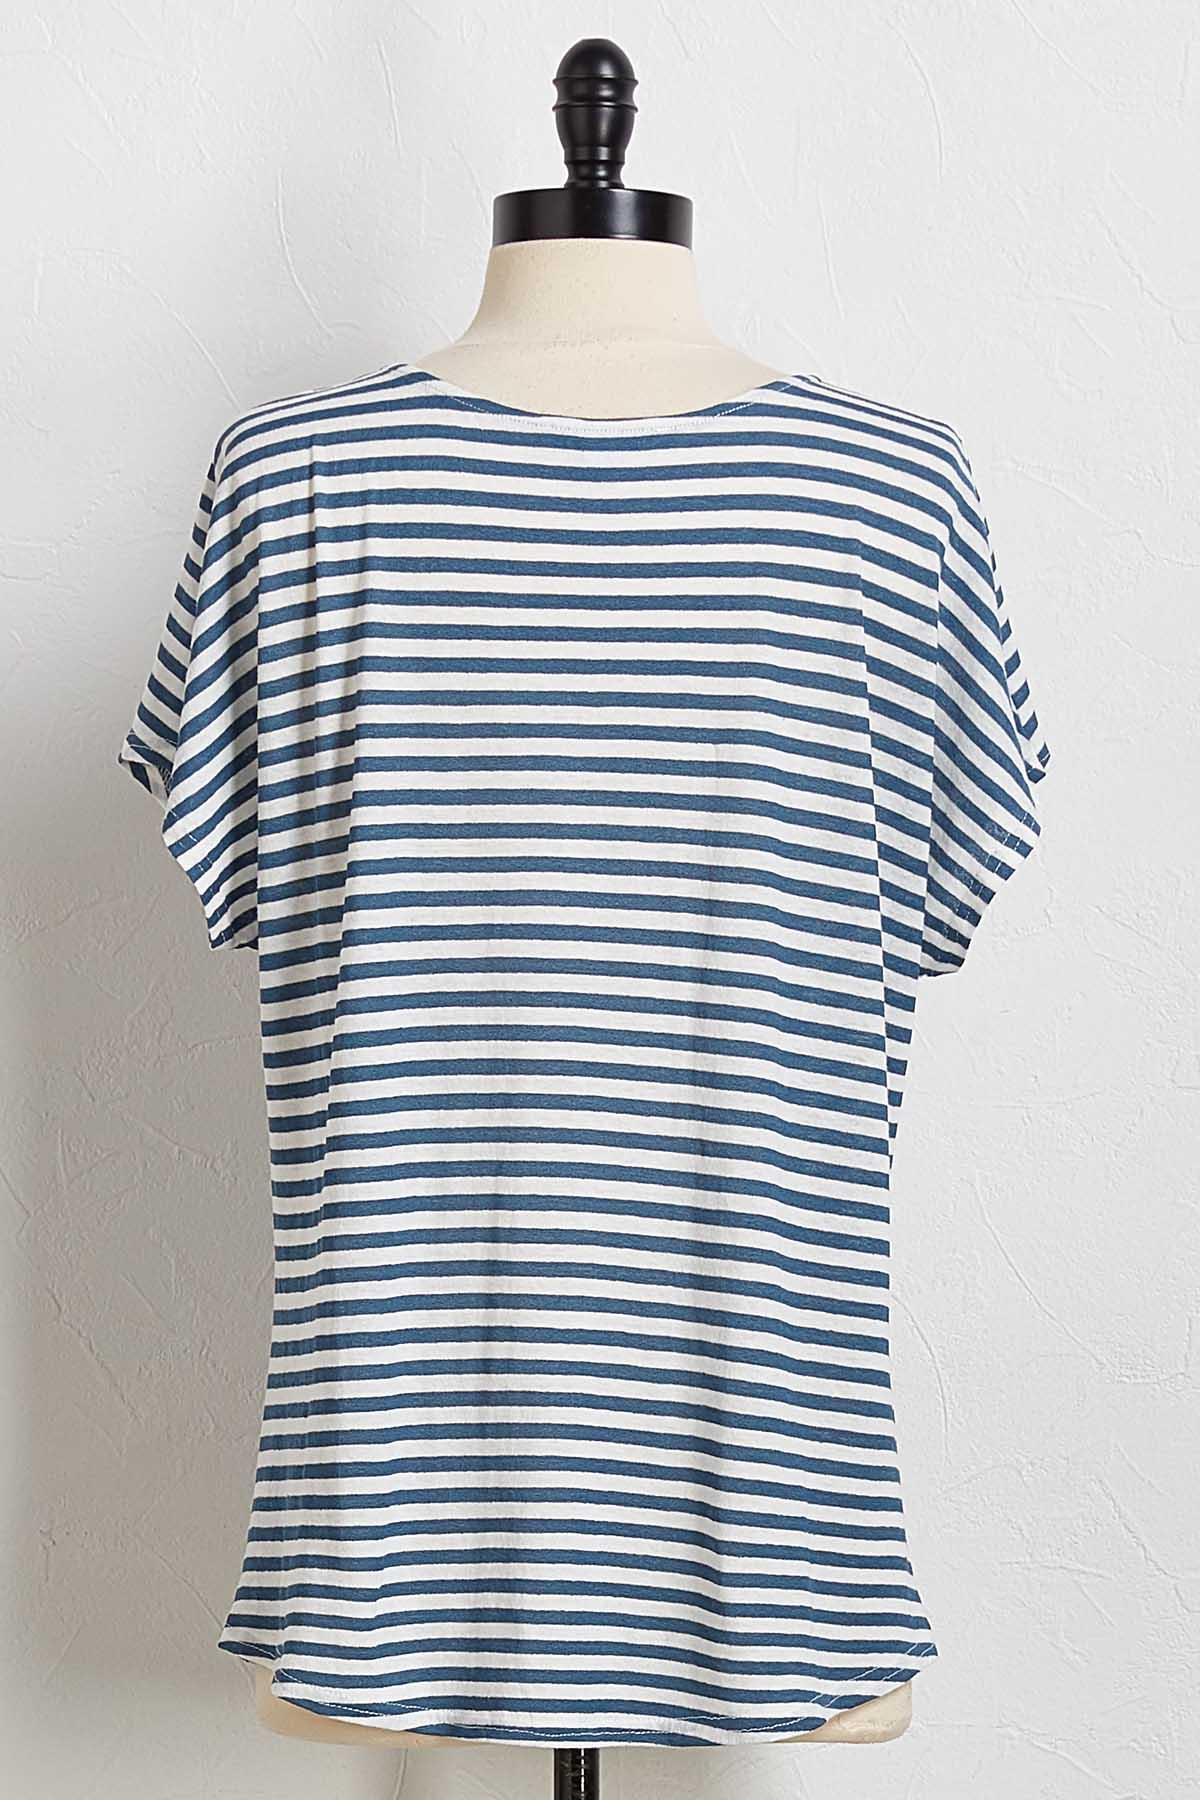 Mitered Knotted Tee